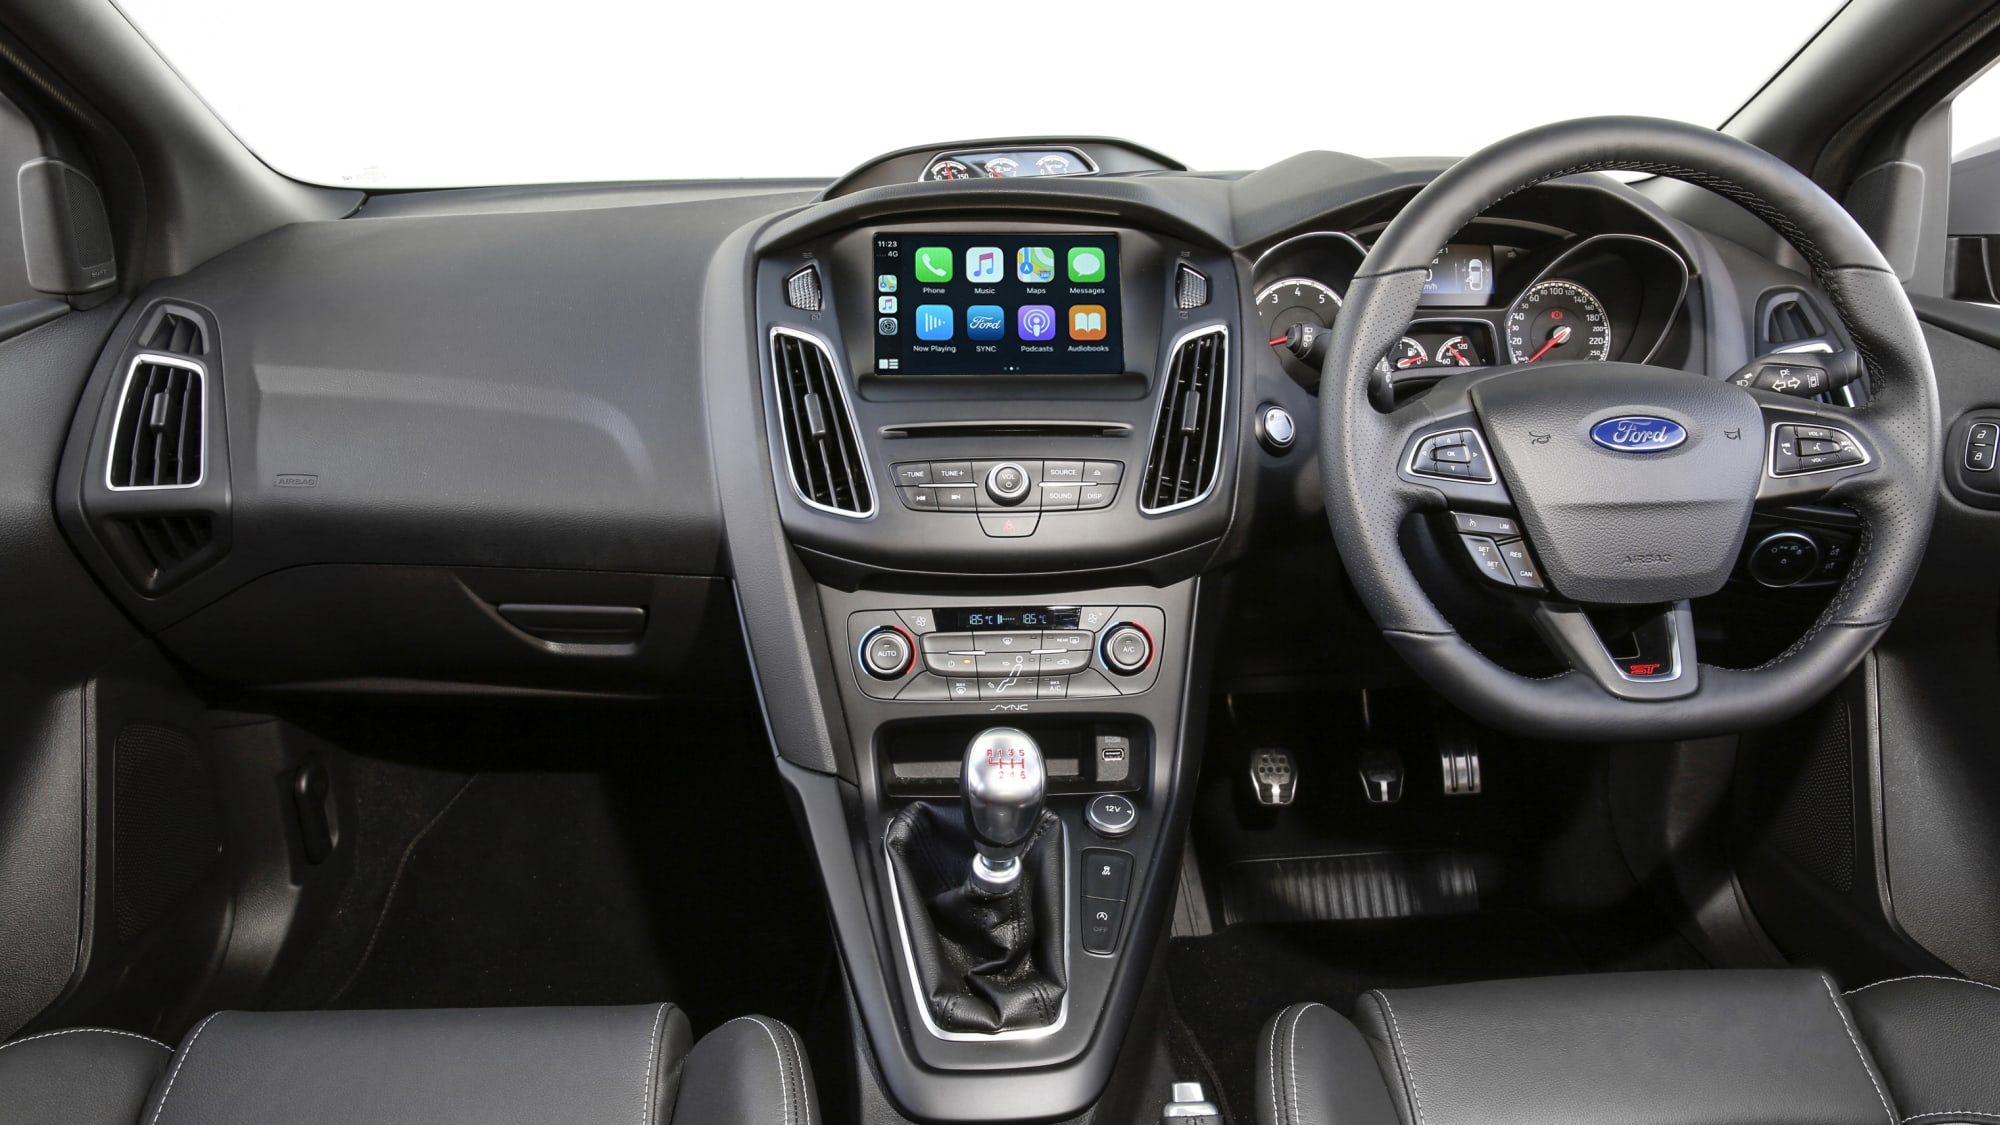 Auto Retrofit - Ford Myford Touch Sync2 System Apple Carplay &Amp; Android Auto Integration